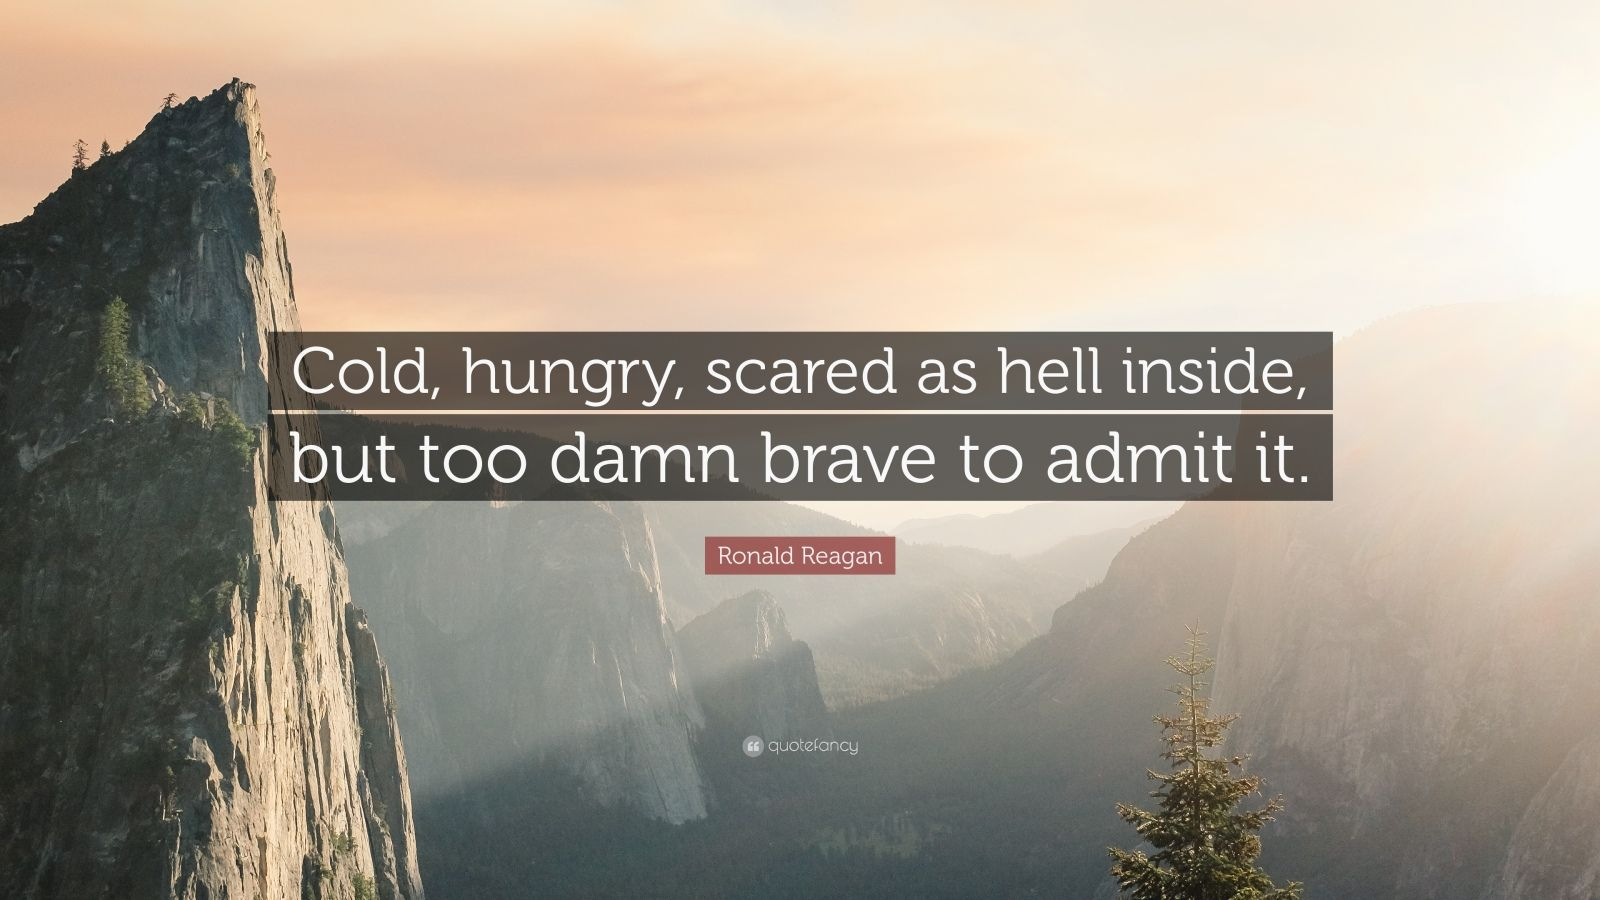 """Ronald Reagan Quote: """"Cold, hungry, scared as hell inside, but too damn brave to admit it."""""""